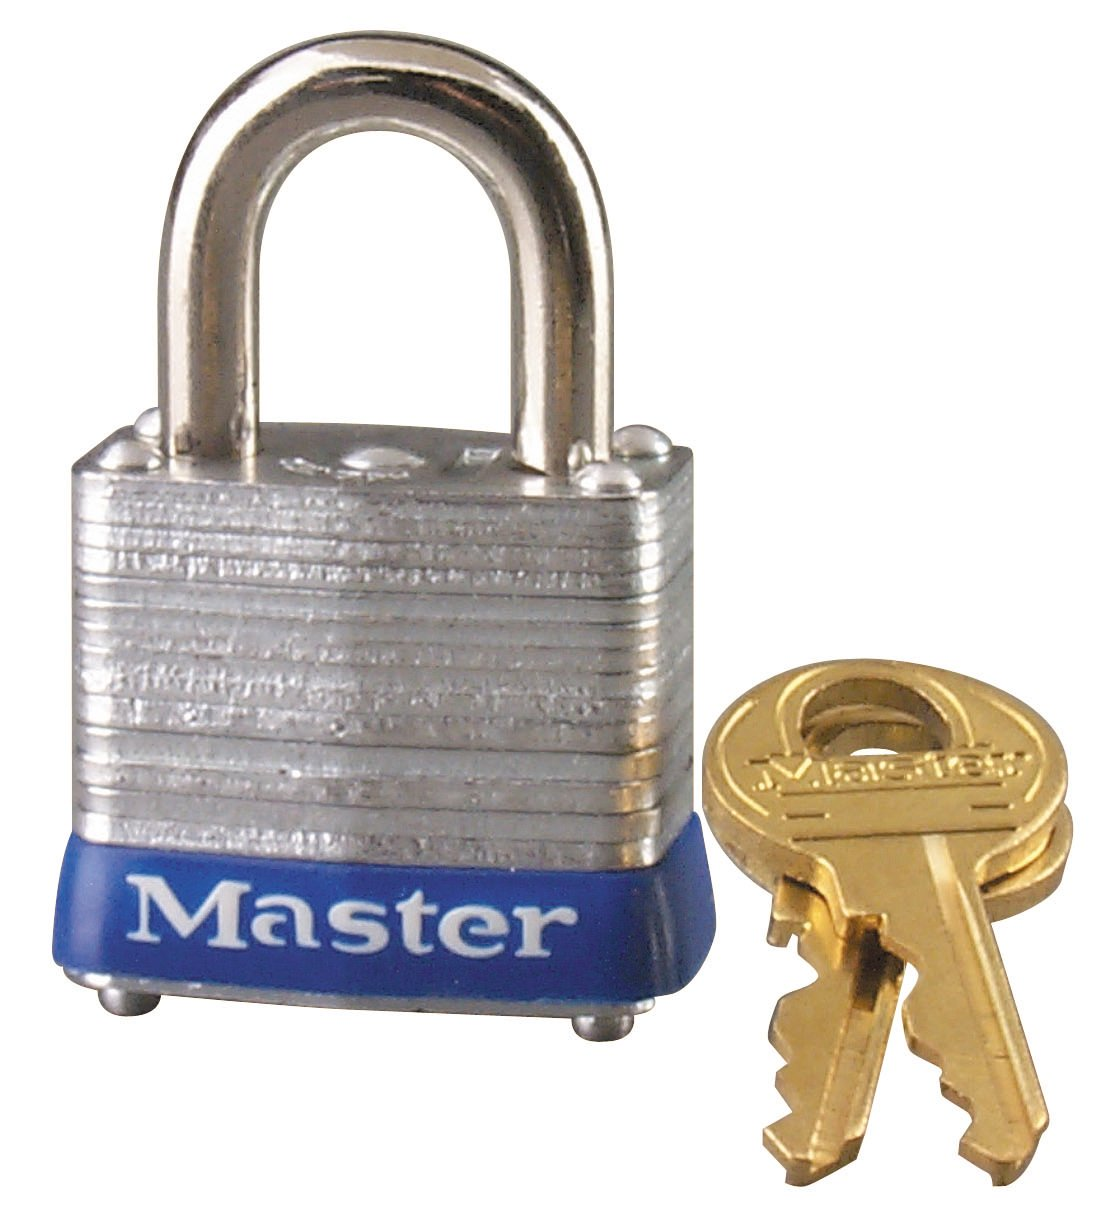 Master Lock 7KA P467#7 Laminated Padlock, 1-1/8' 1-1/8 Jensen (Home Improvement)